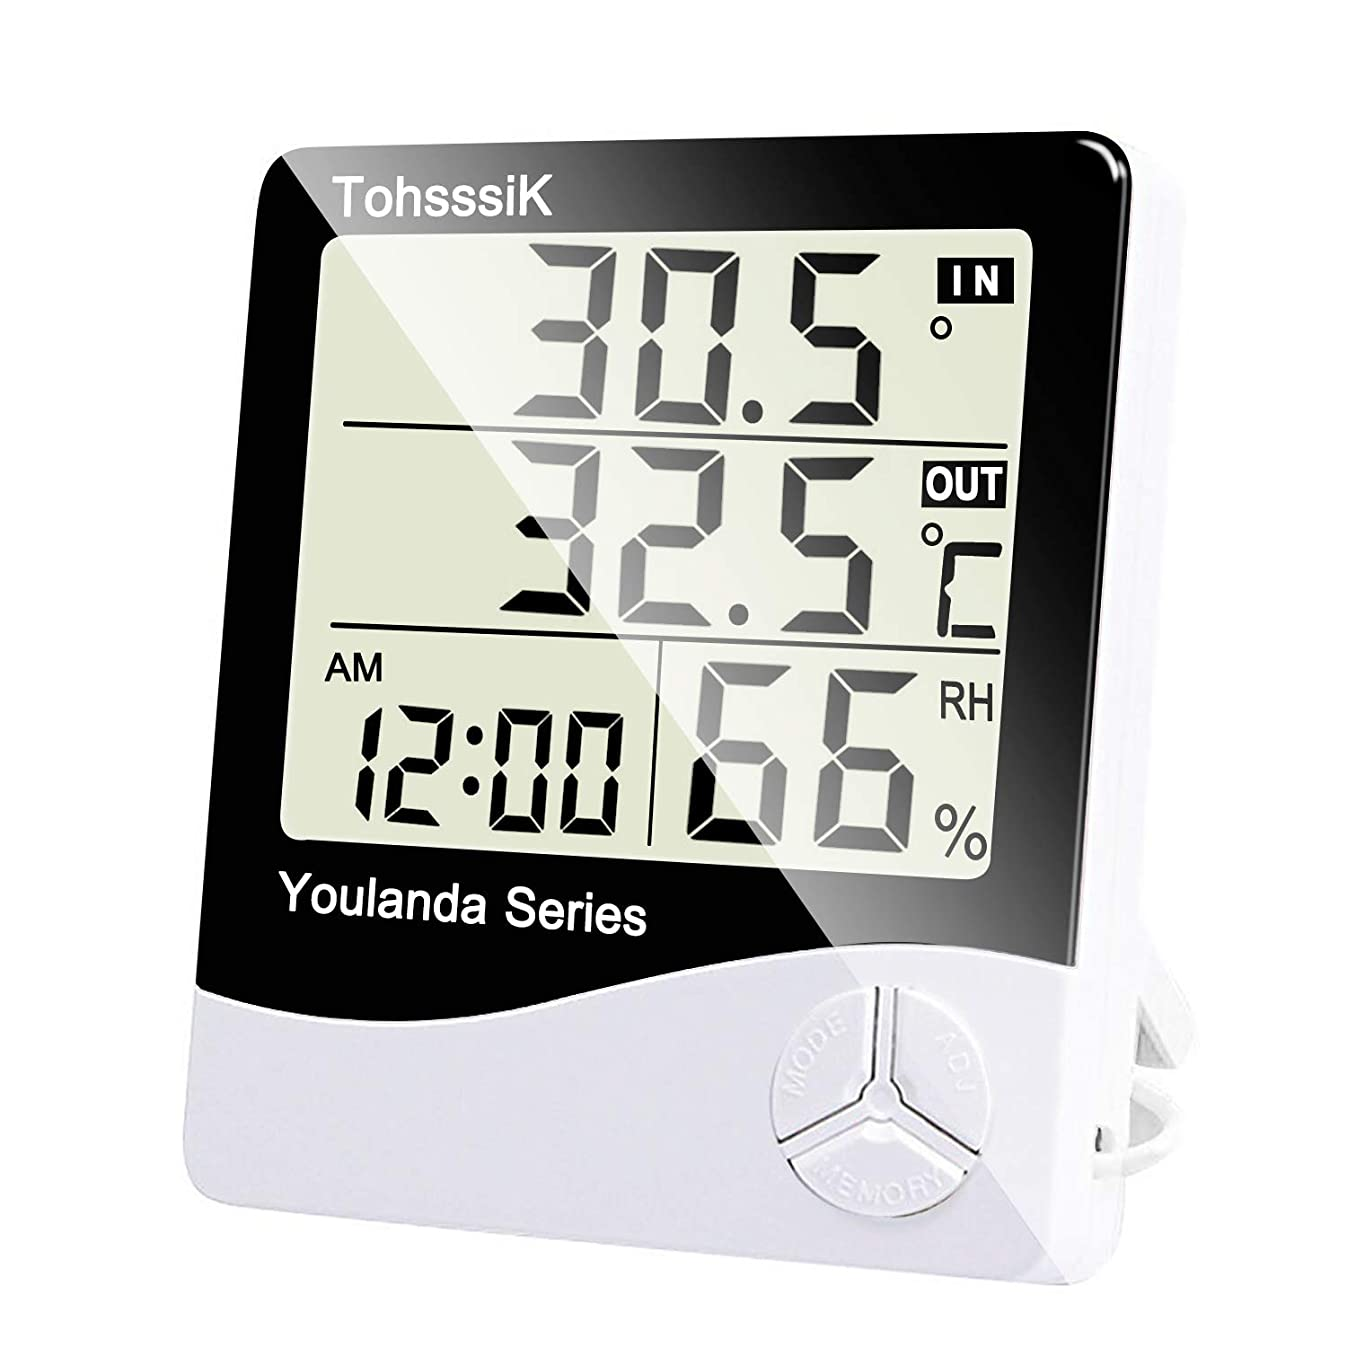 Tohsssik Indoor Digital Thermometer Hygrometer, Outdoor Mini Temperature Monitor Humidity Gauge for Room with Alarm Clock